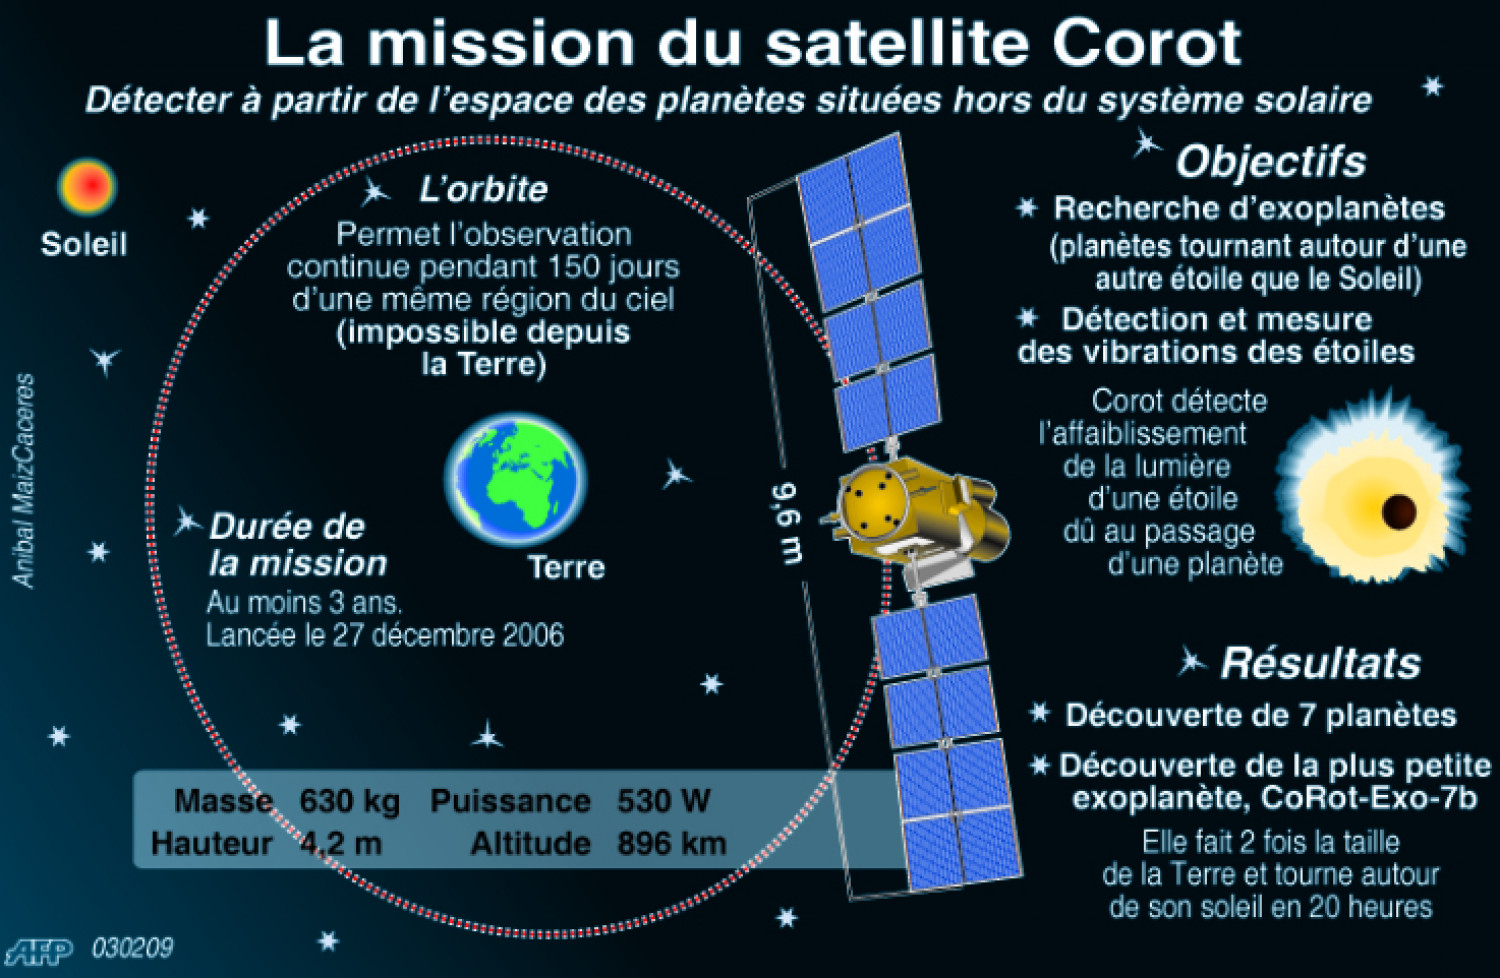 La mission du satellite Corot Infographic